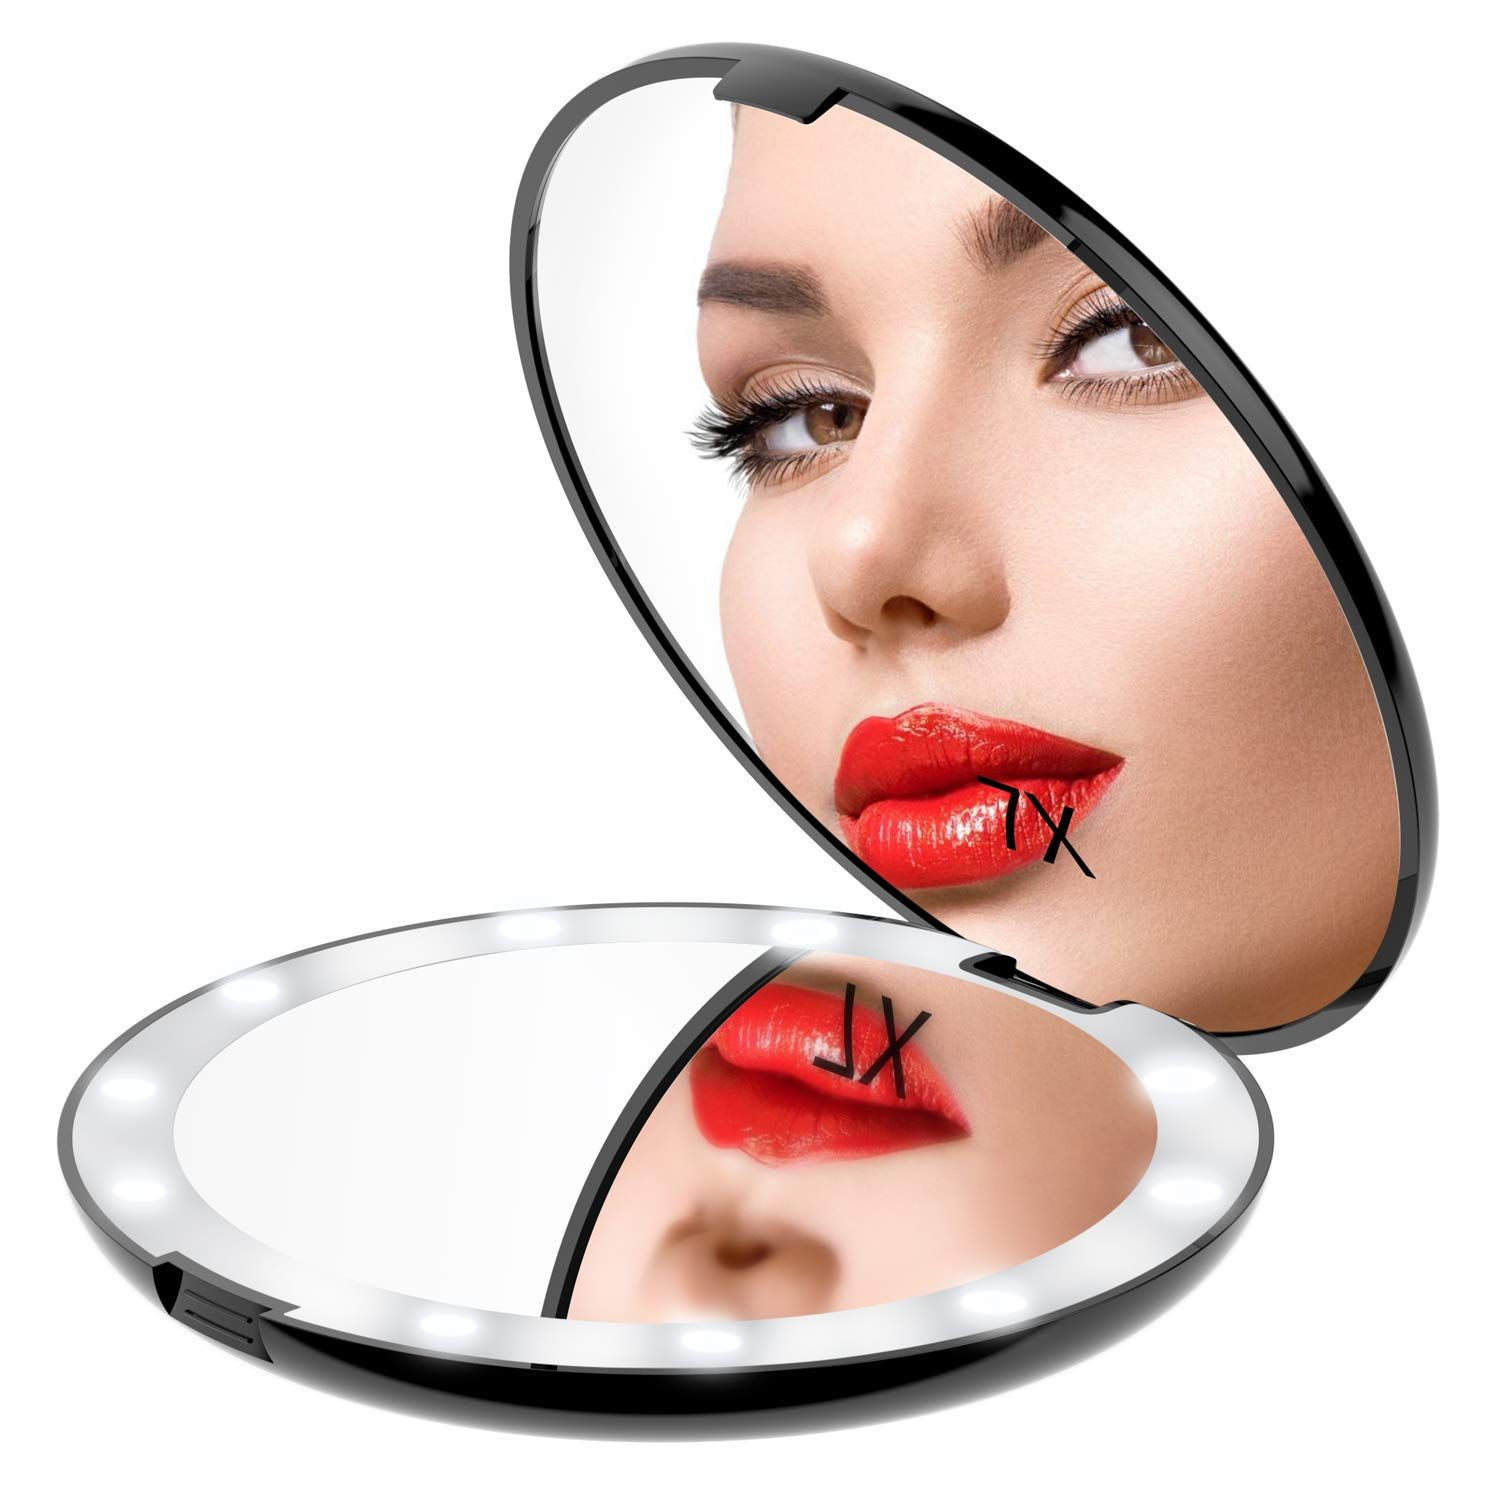 Gospire 5 Inch LED Compact Cosmetic Mirror, 1X/7X Double